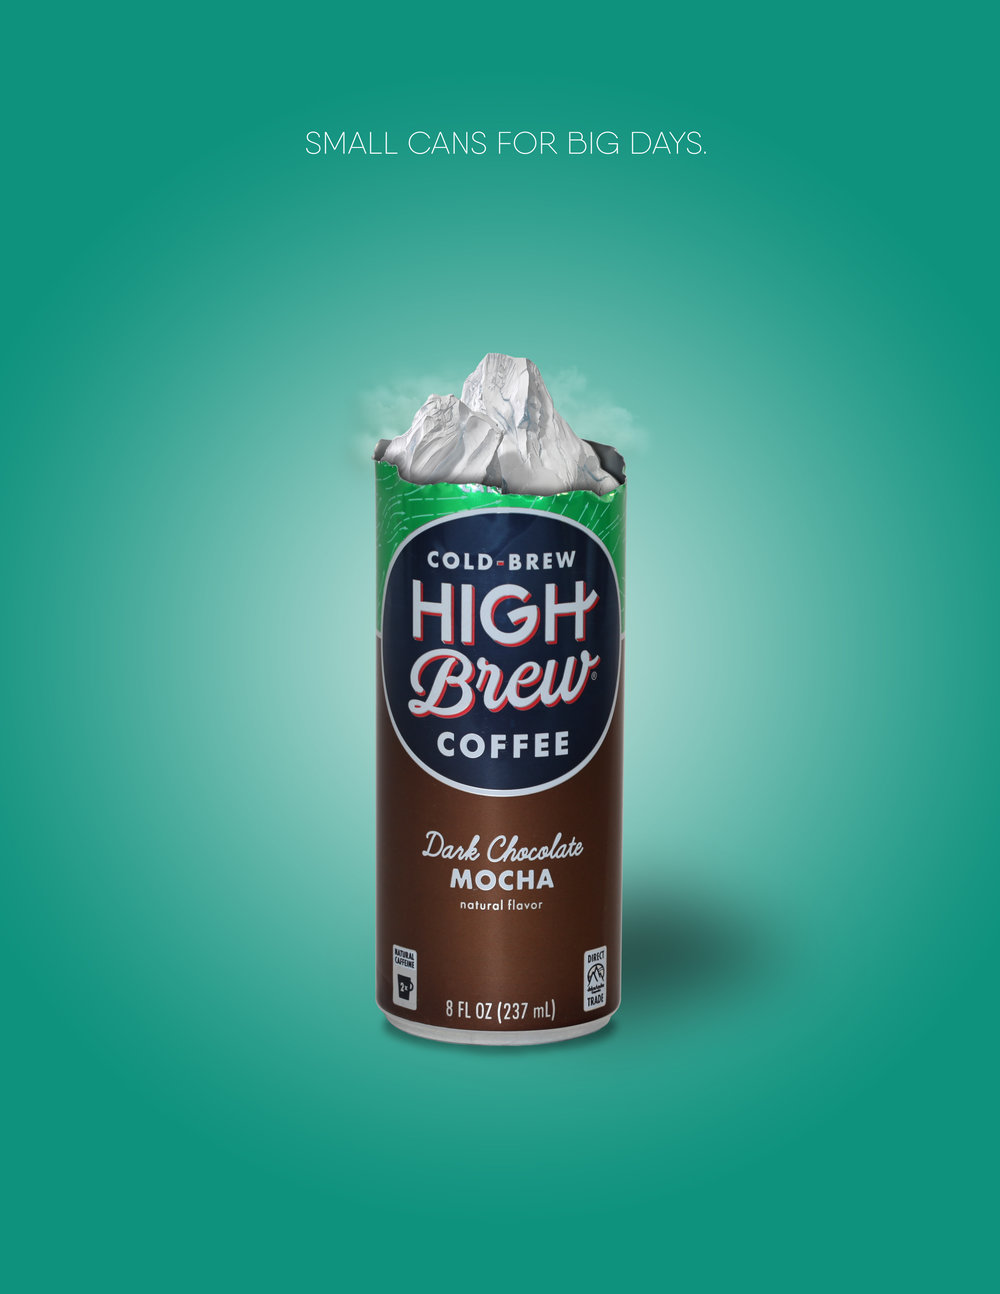 Print campaign created for High Brew Coffee  (Creative Direction, Design, Copy, and Photography)